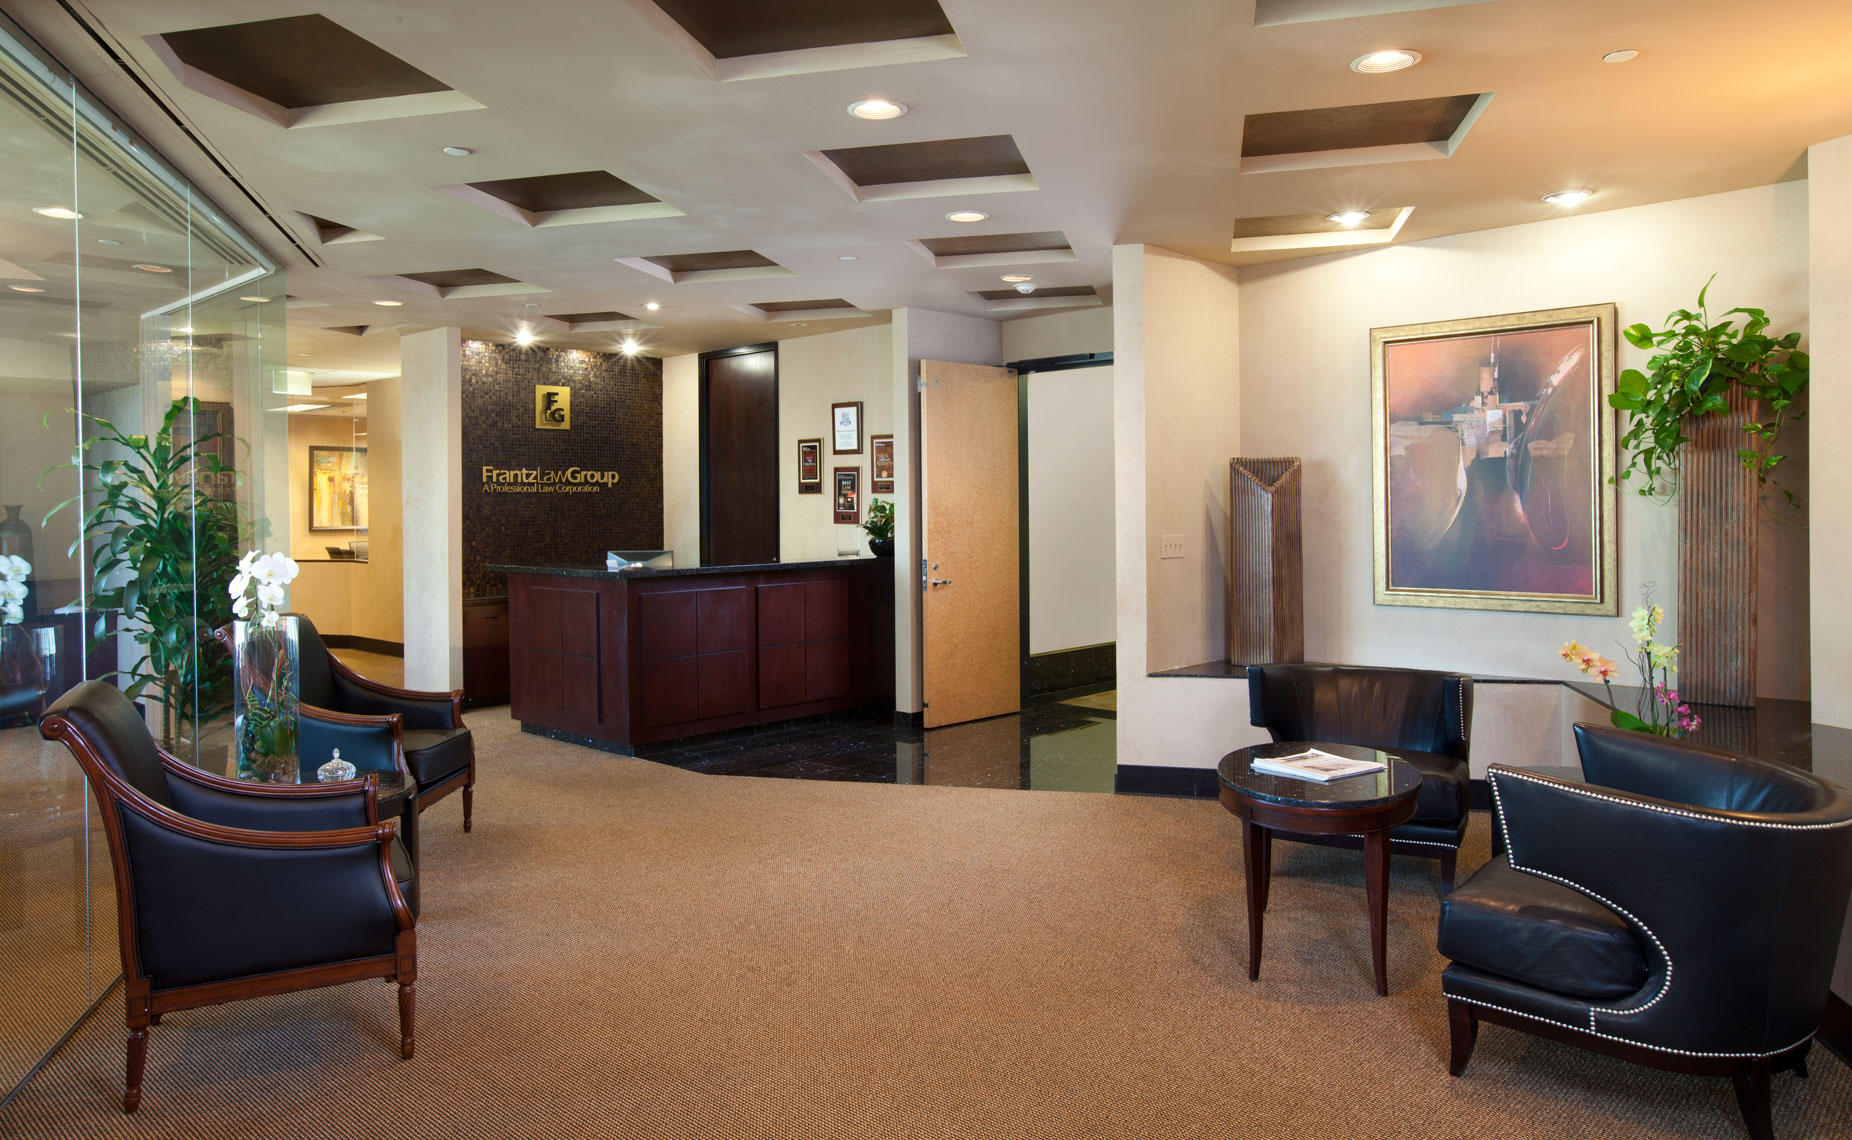 Corporate Photographers San Diego Interior Office Architecture Architect Interior Design Building